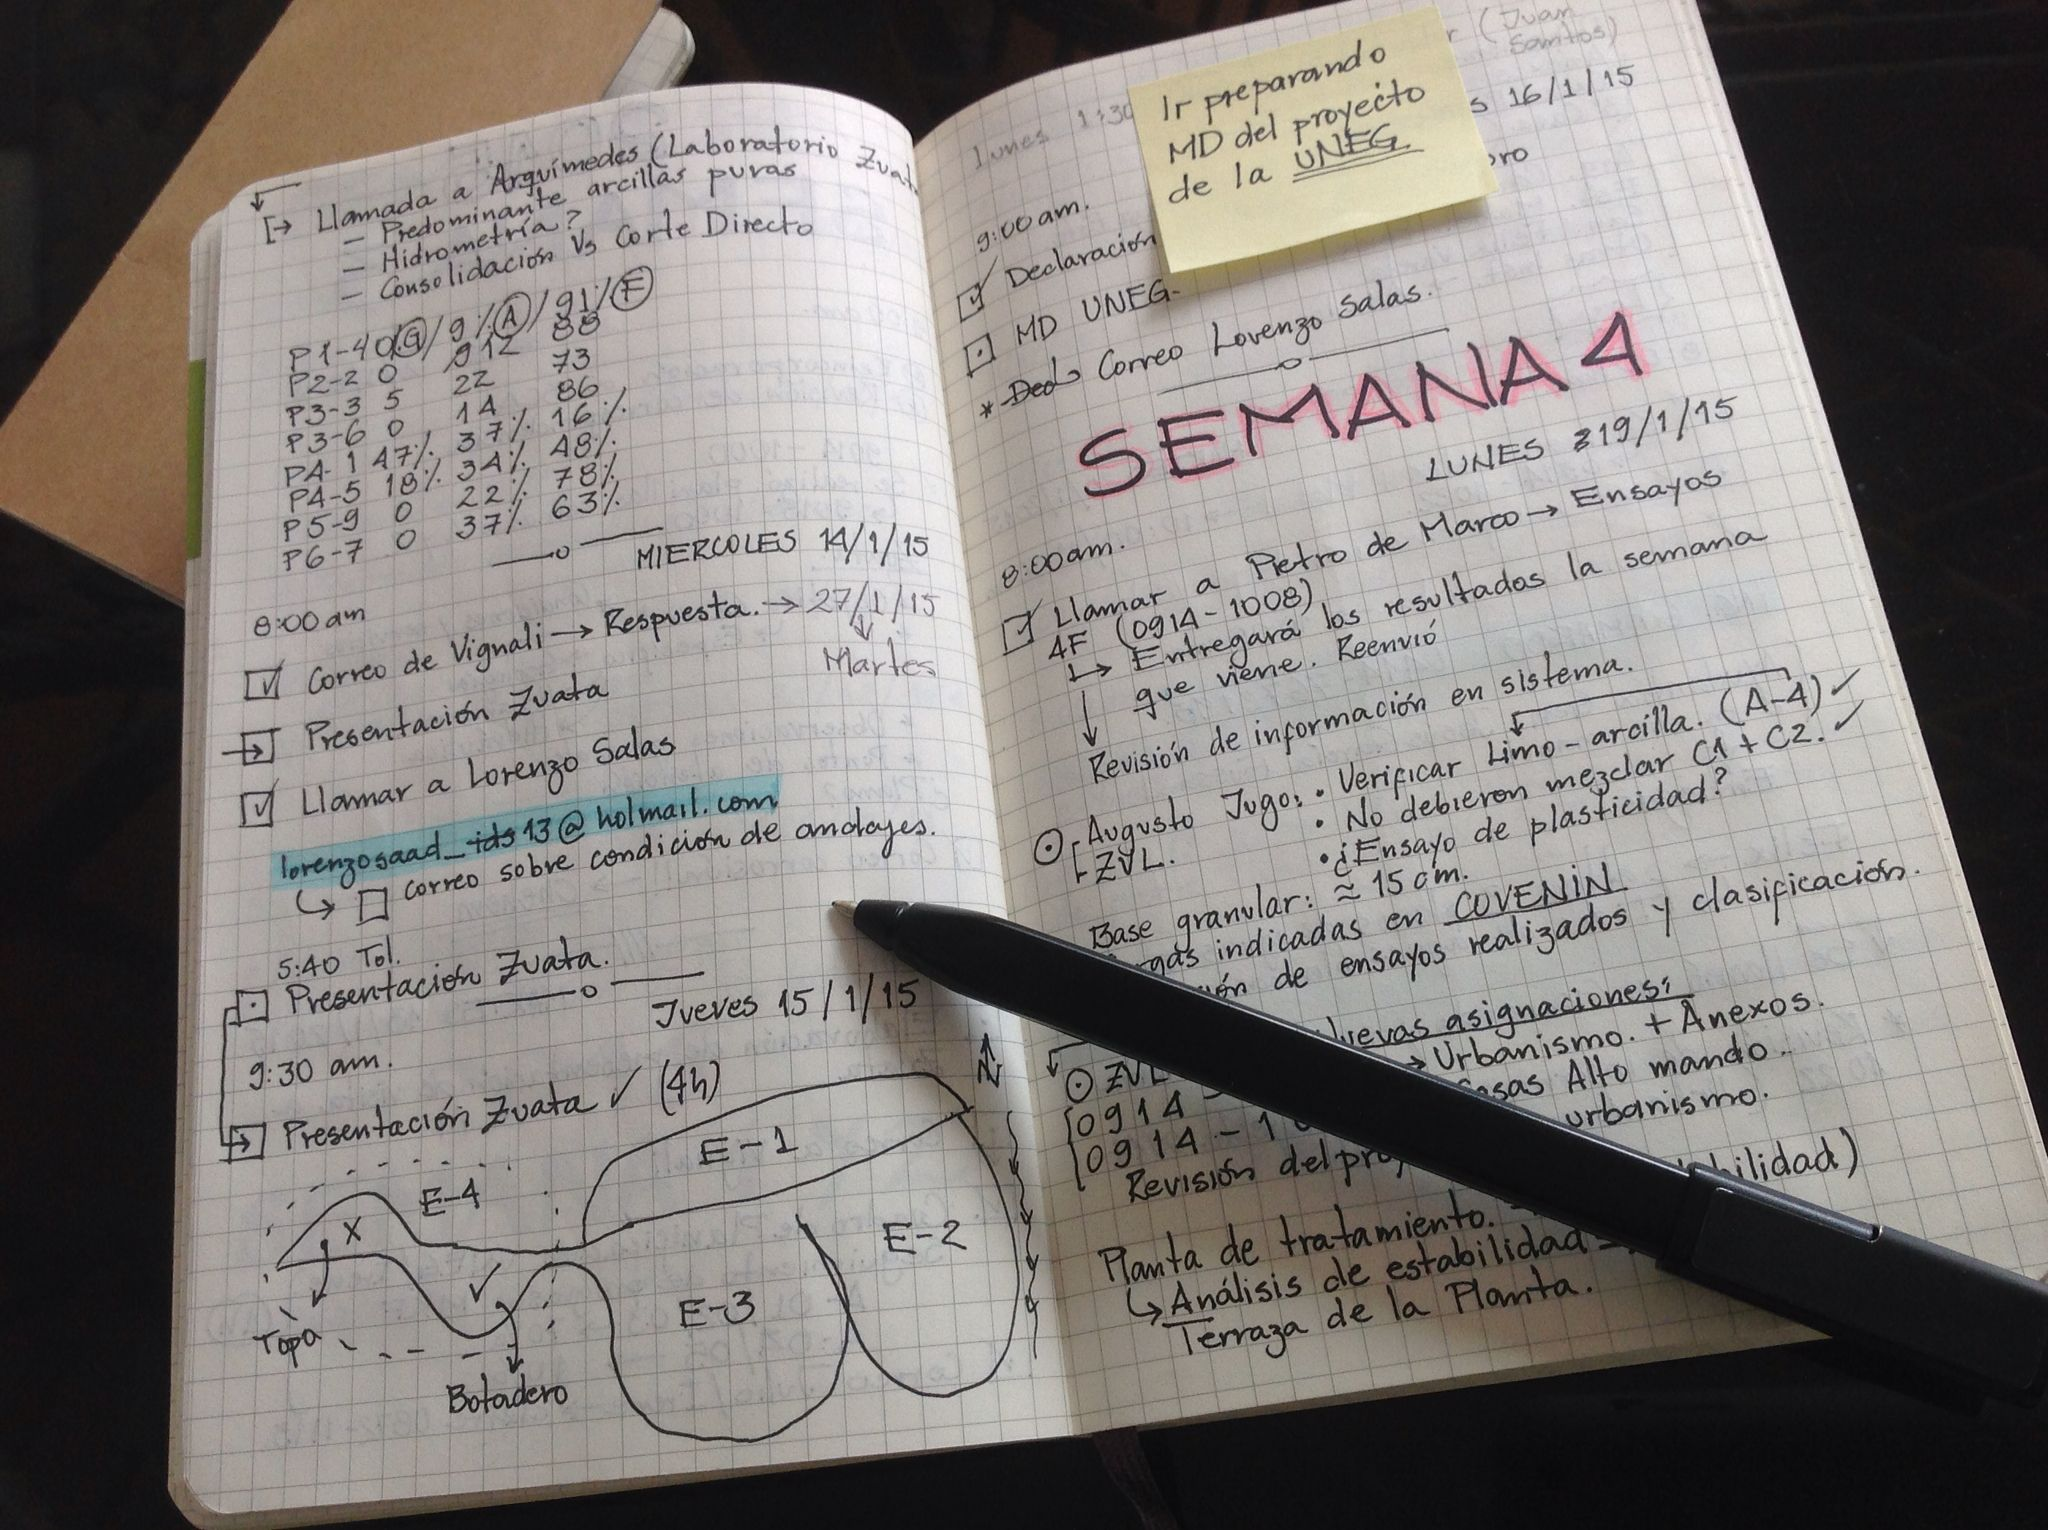 The moleskine trata I use for work. I take notes in my work every Day for not forget nothing!!